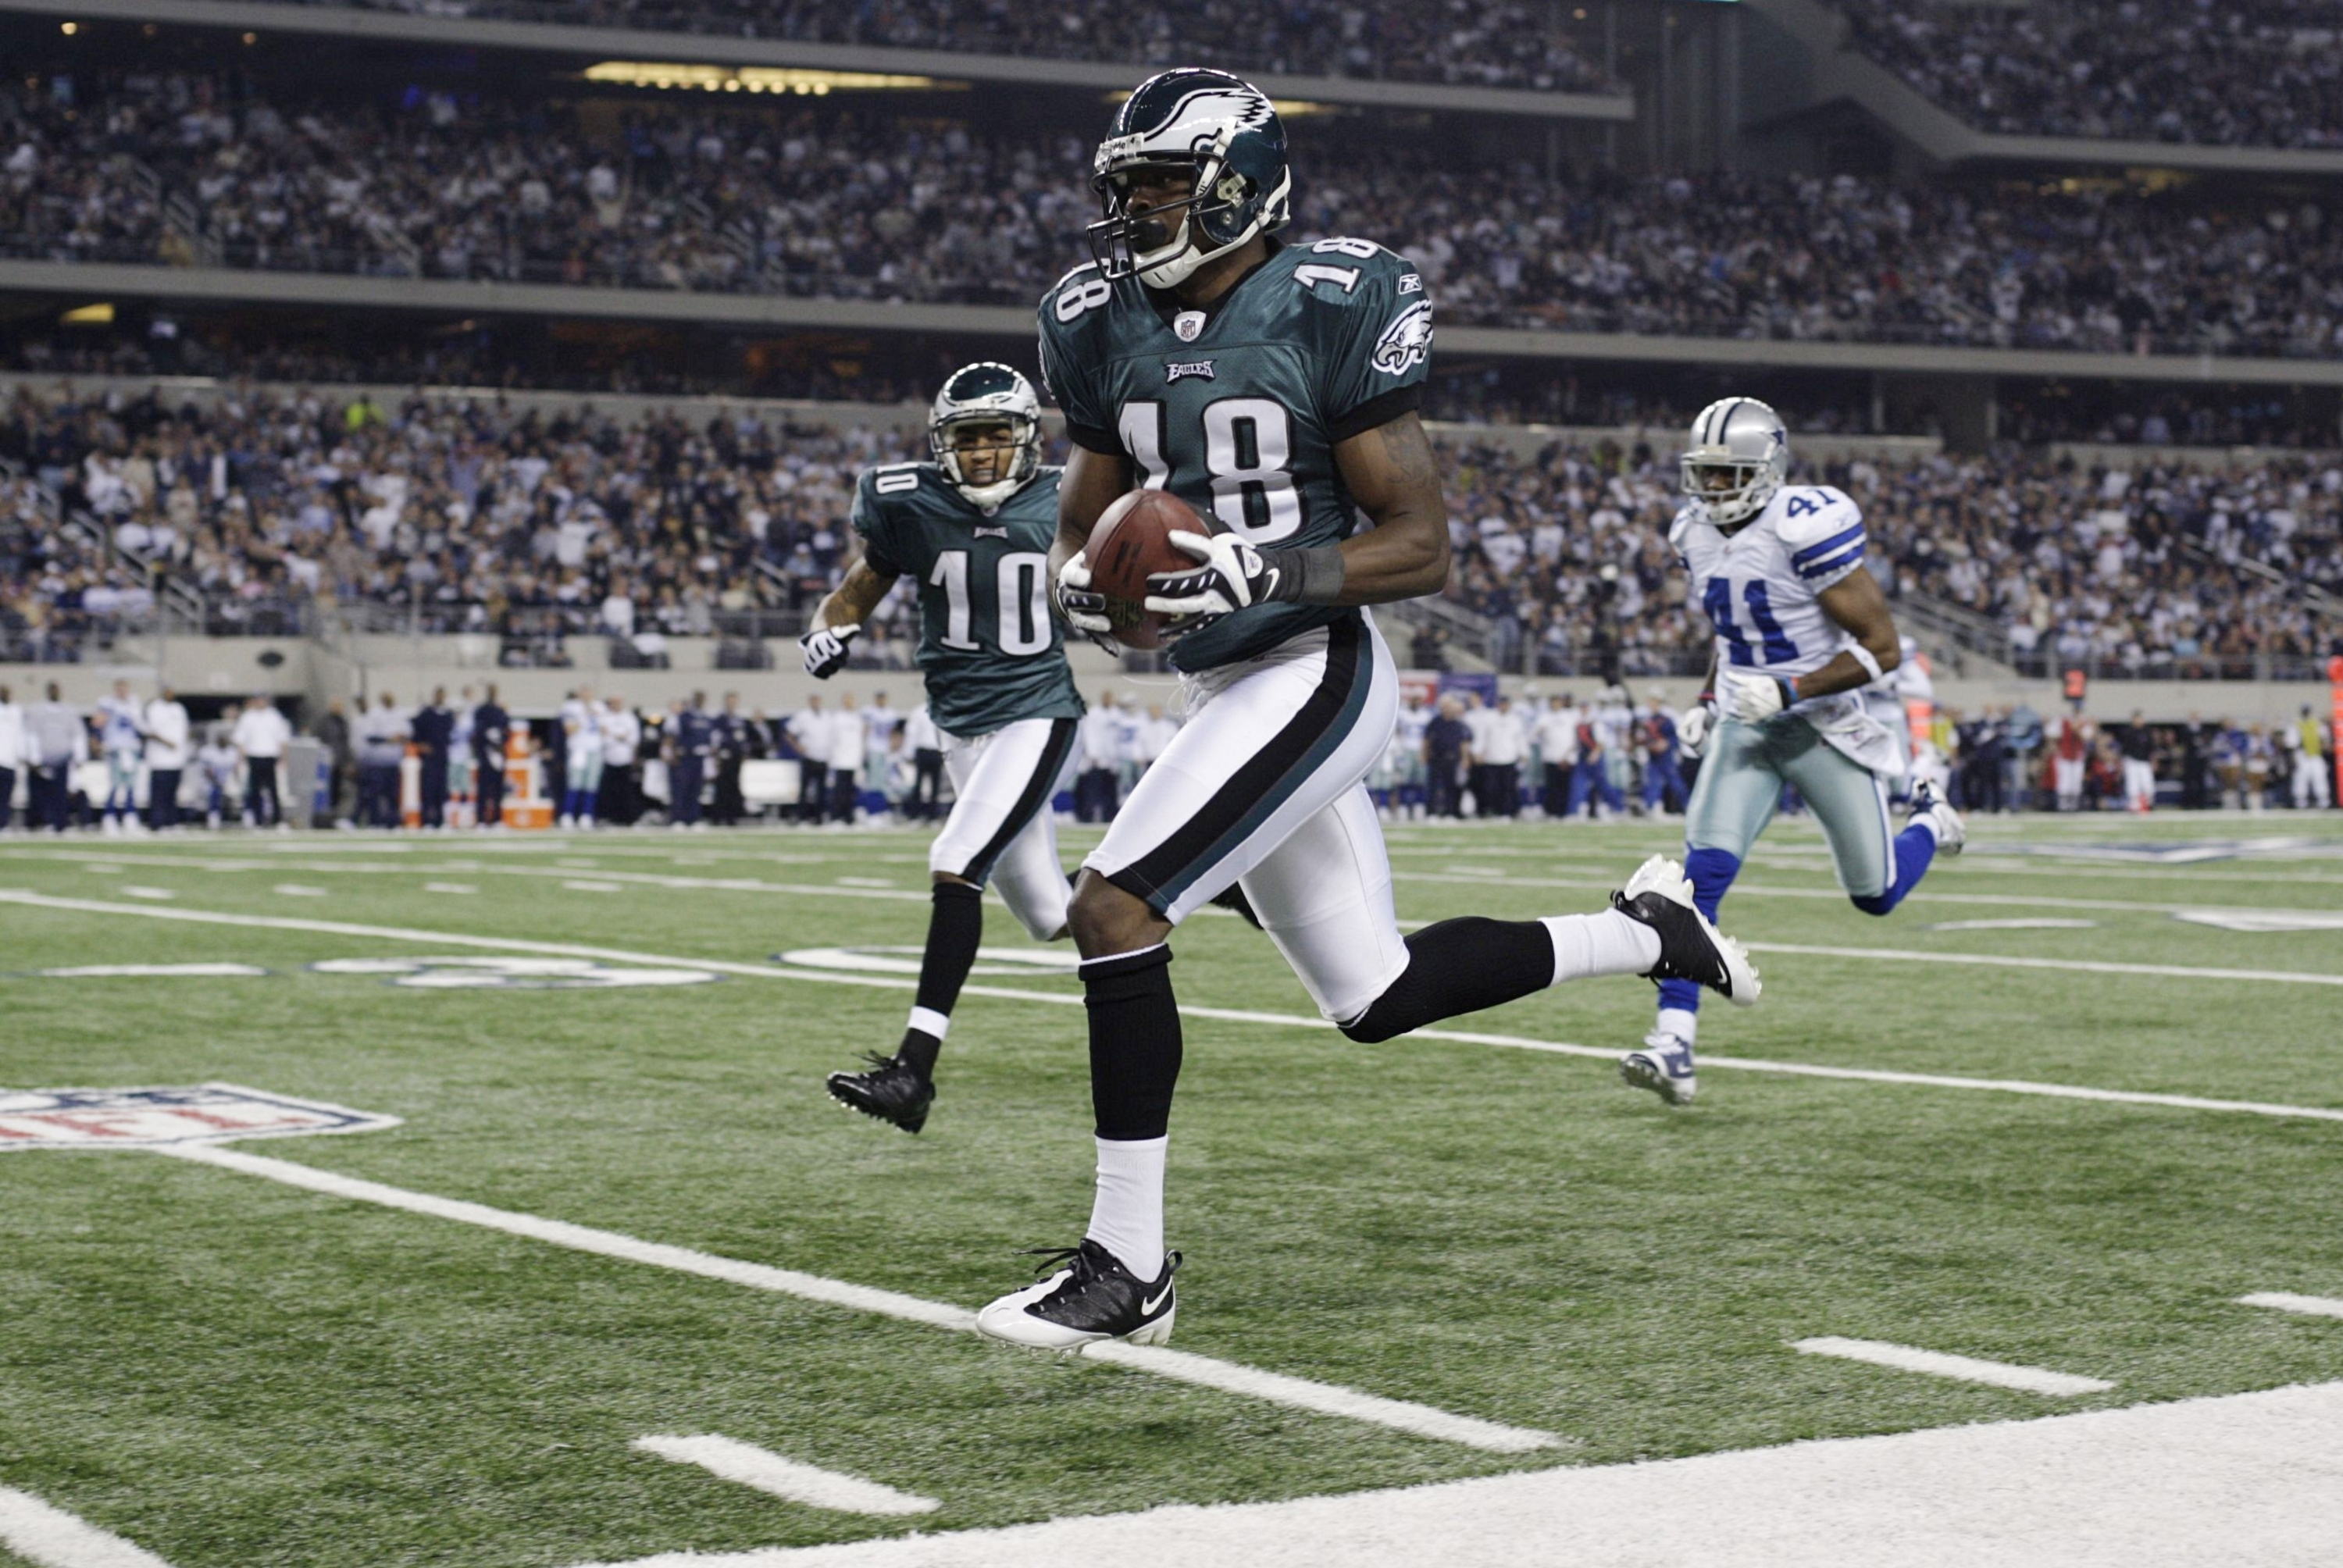 ARLINGTON, TX - JANUARY 9:  Jeremy Maclin #18 of the Philadelphia Eagles runs for a 76-yard touchdown in the second quarter on a pass from quarterback Michael Vick #7 against the Dallas Cowboys during the 2010 NFC wild-card playoff game at Cowboys Stadium